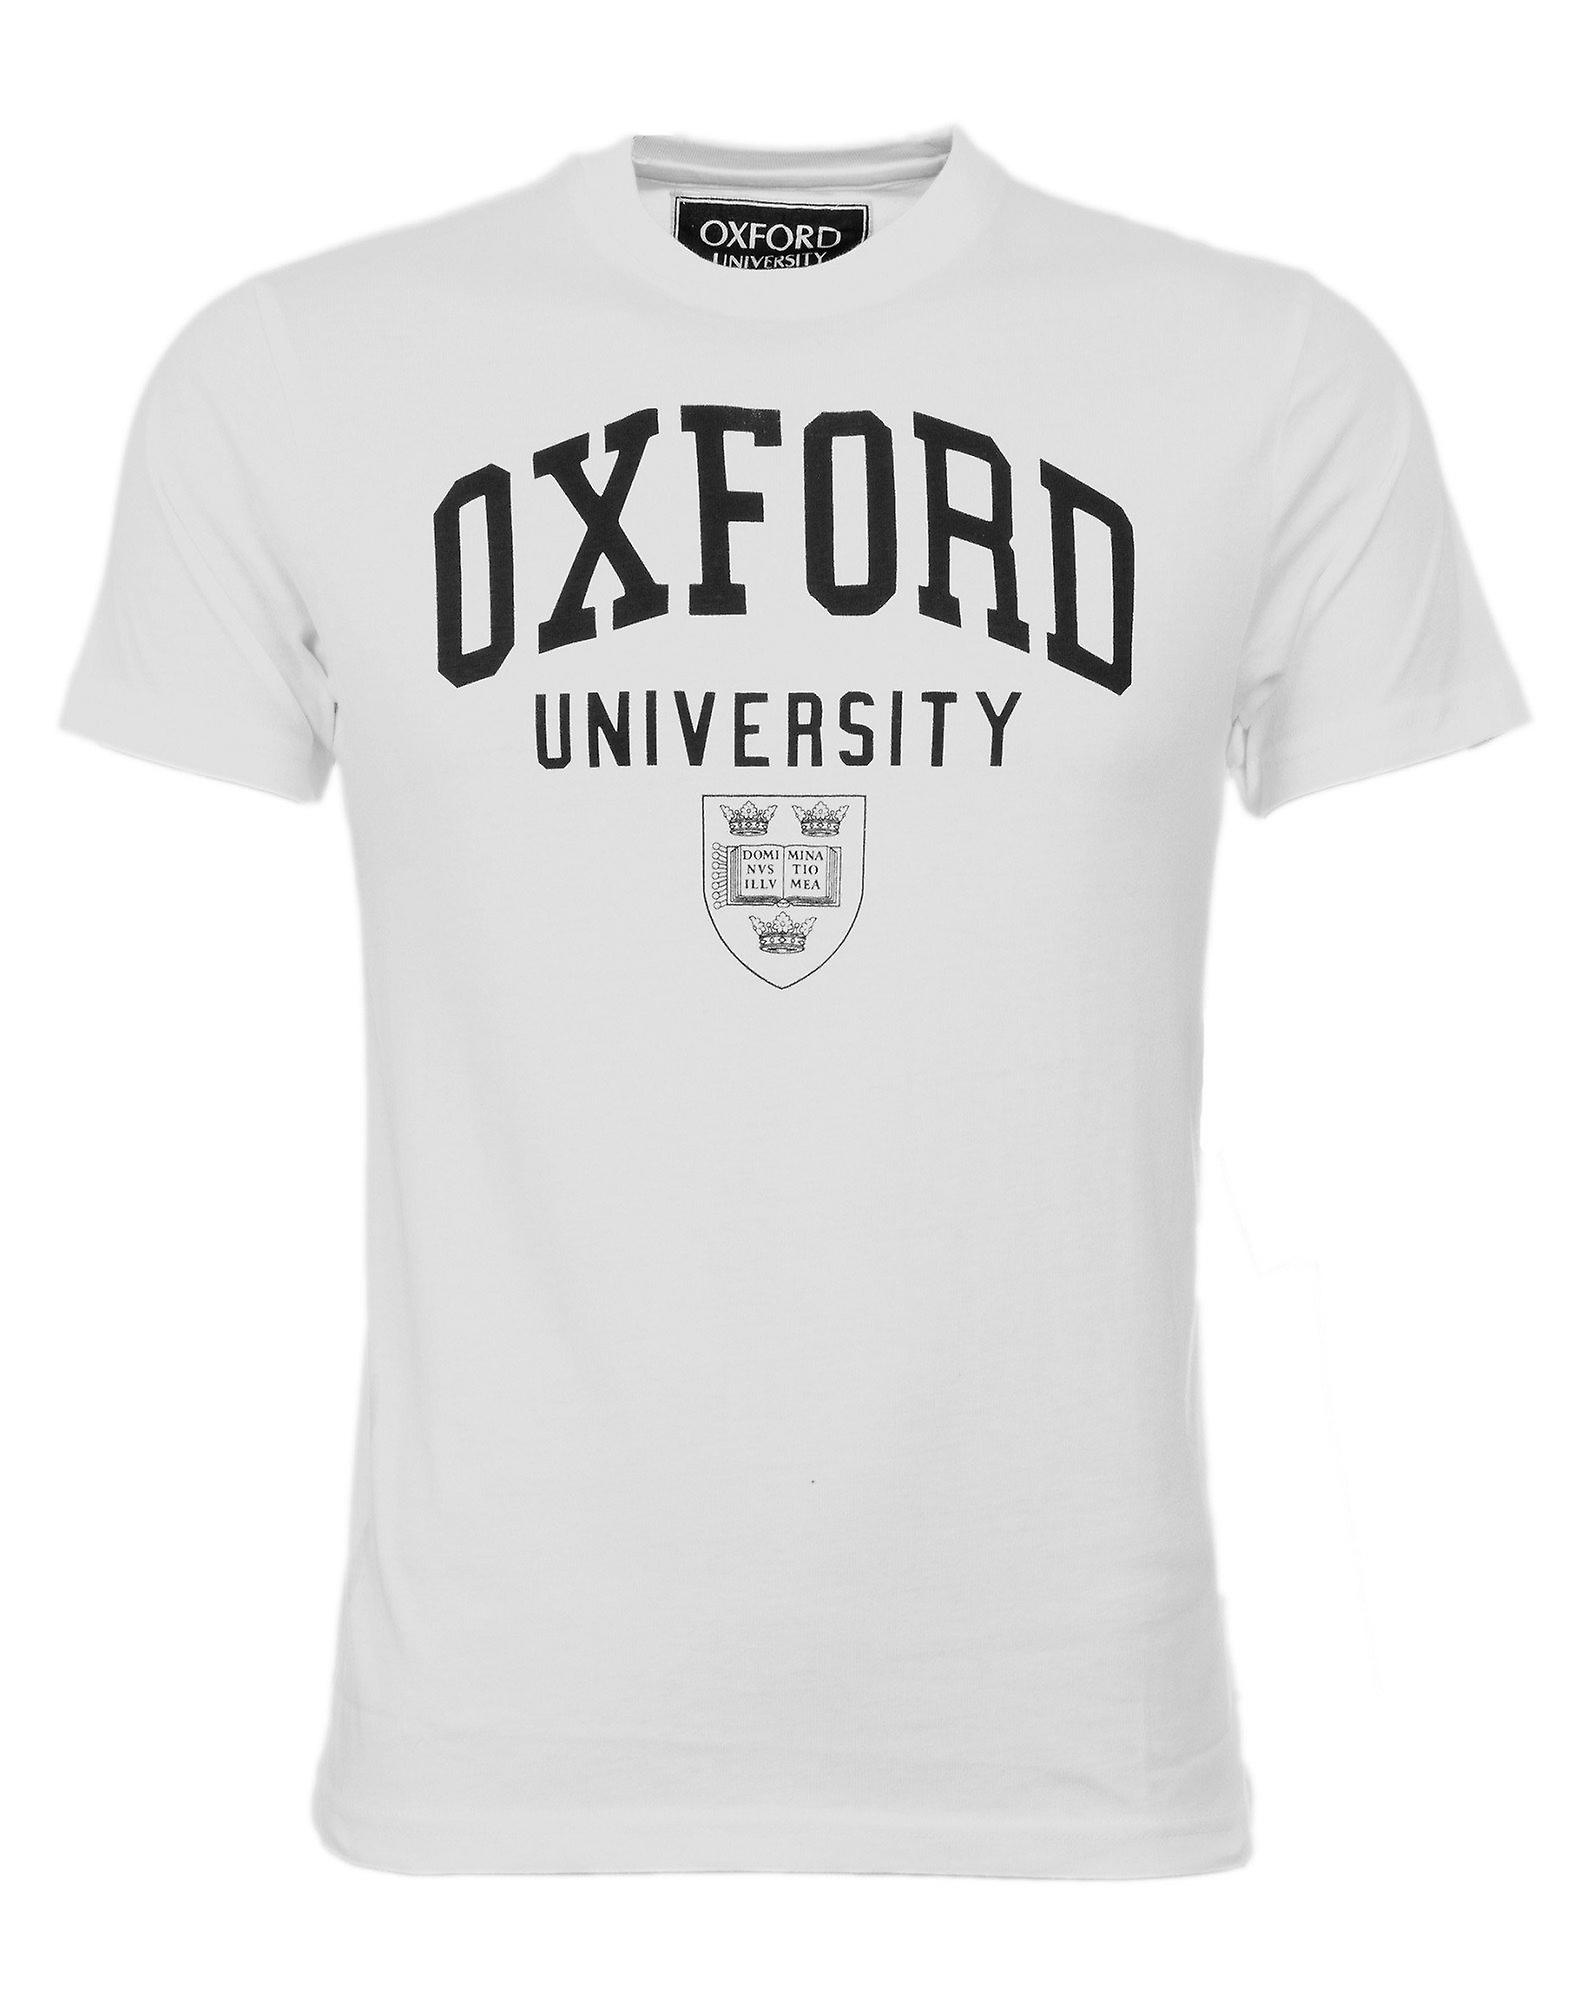 Officially Licensed Oxford University Men's Tshirt